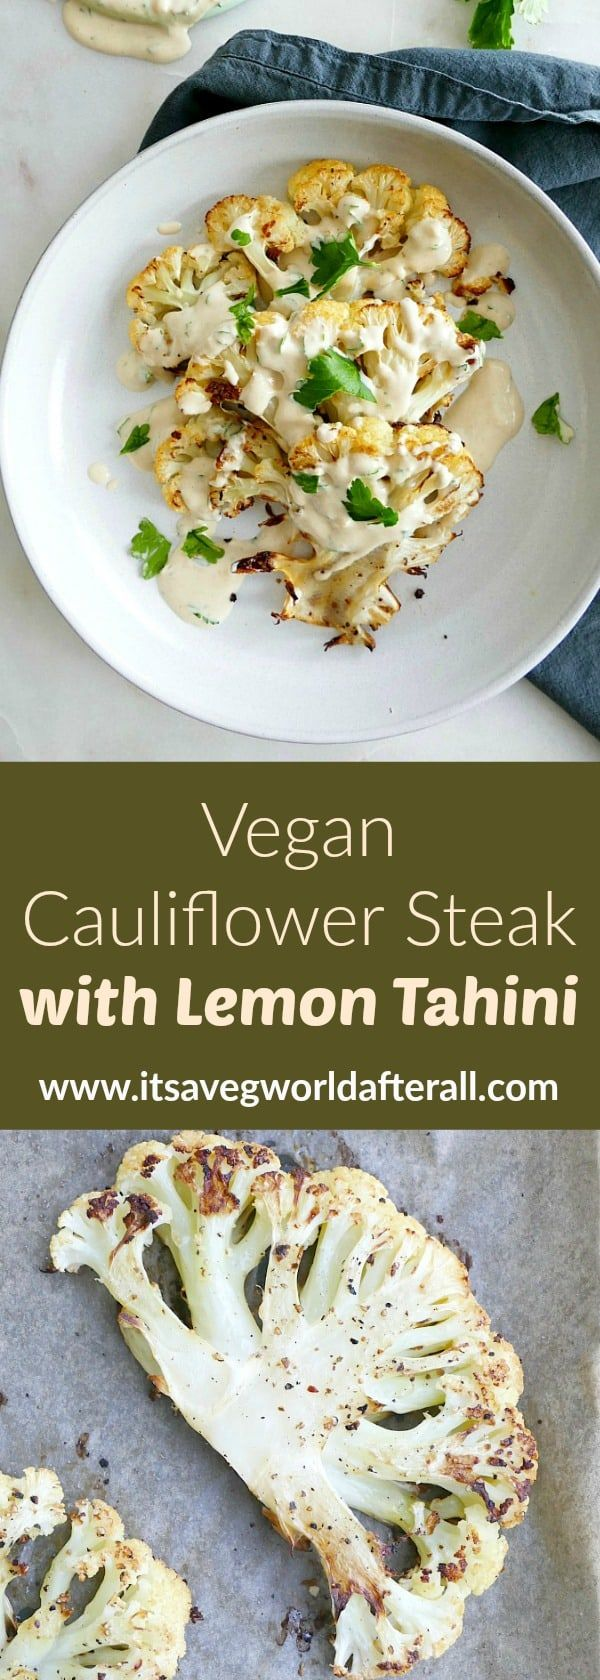 Vegan Cauliflower Steak with Lemon Parsley Tahini - this delicious plant-based steak recipe is perfect for dinner! Drizzled with a creamy tahini sauce, it's hard to resist. Serve it as a vegan main or side dish. #cauliflower #healthyrecipes